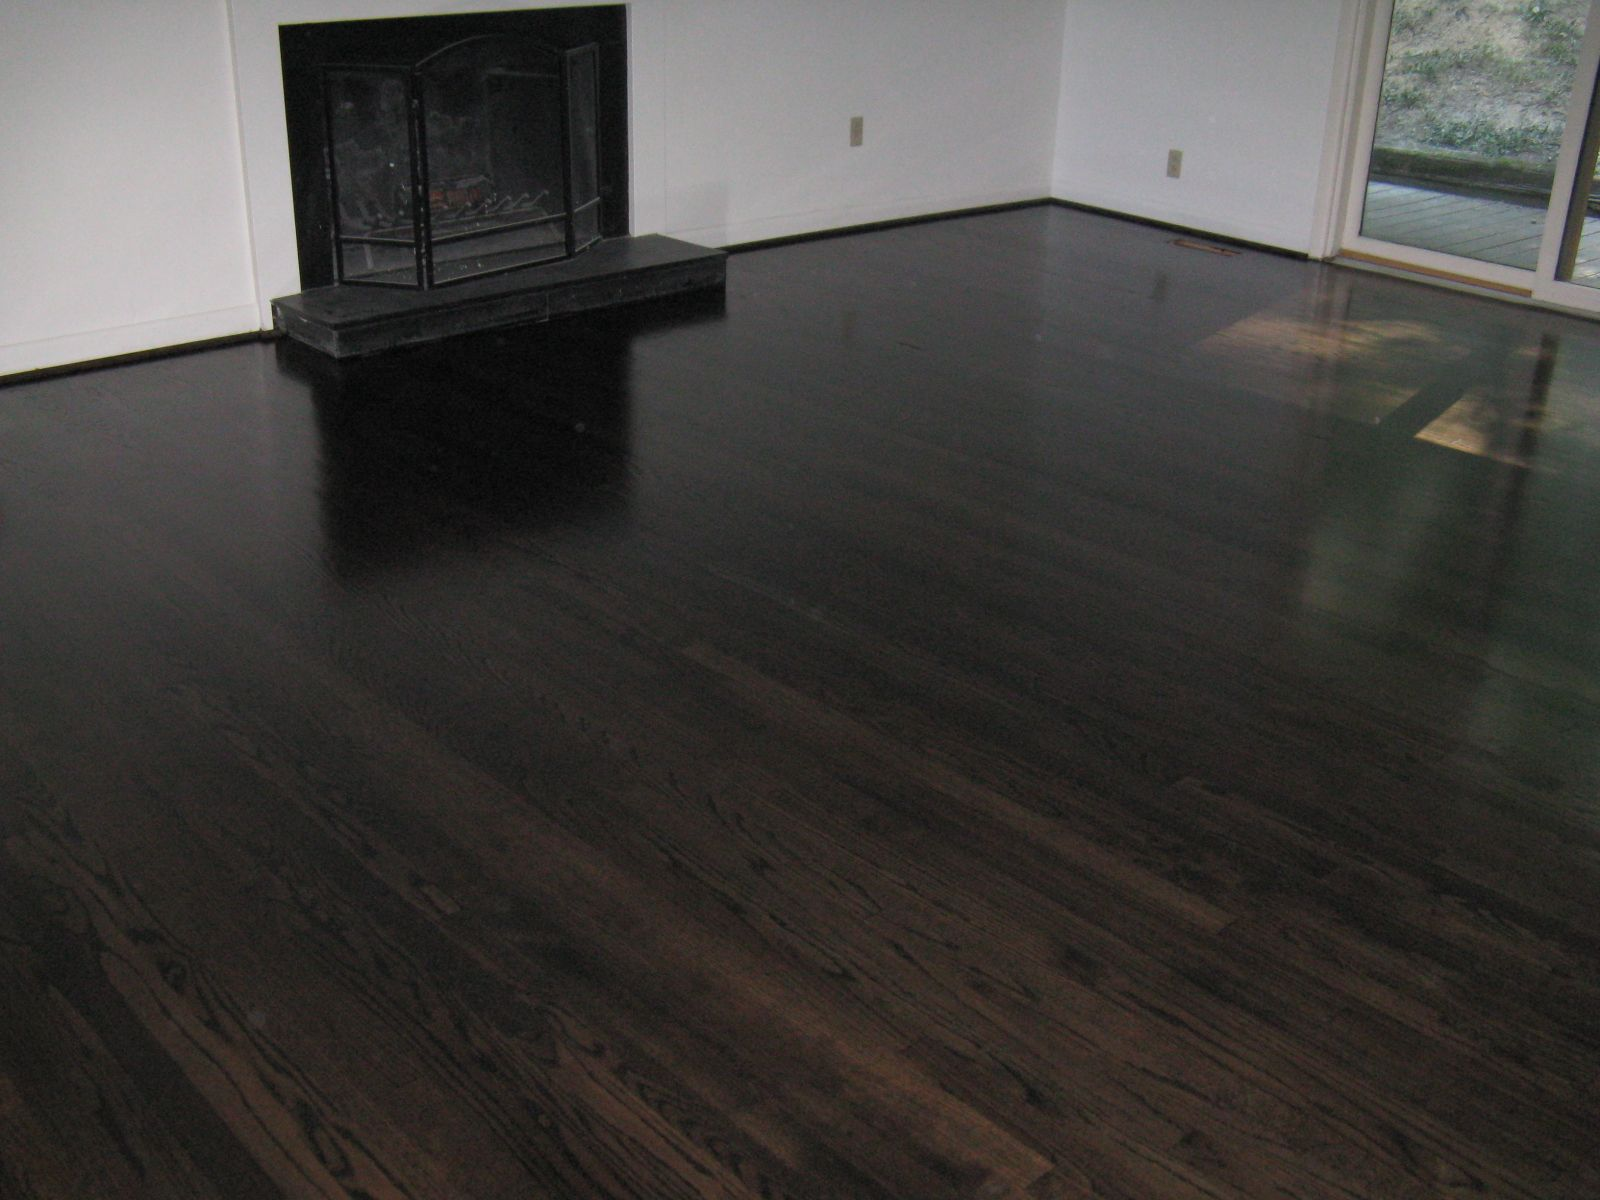 5 red oak stained black ebony throughout first floor 06 for Staining hardwood floors